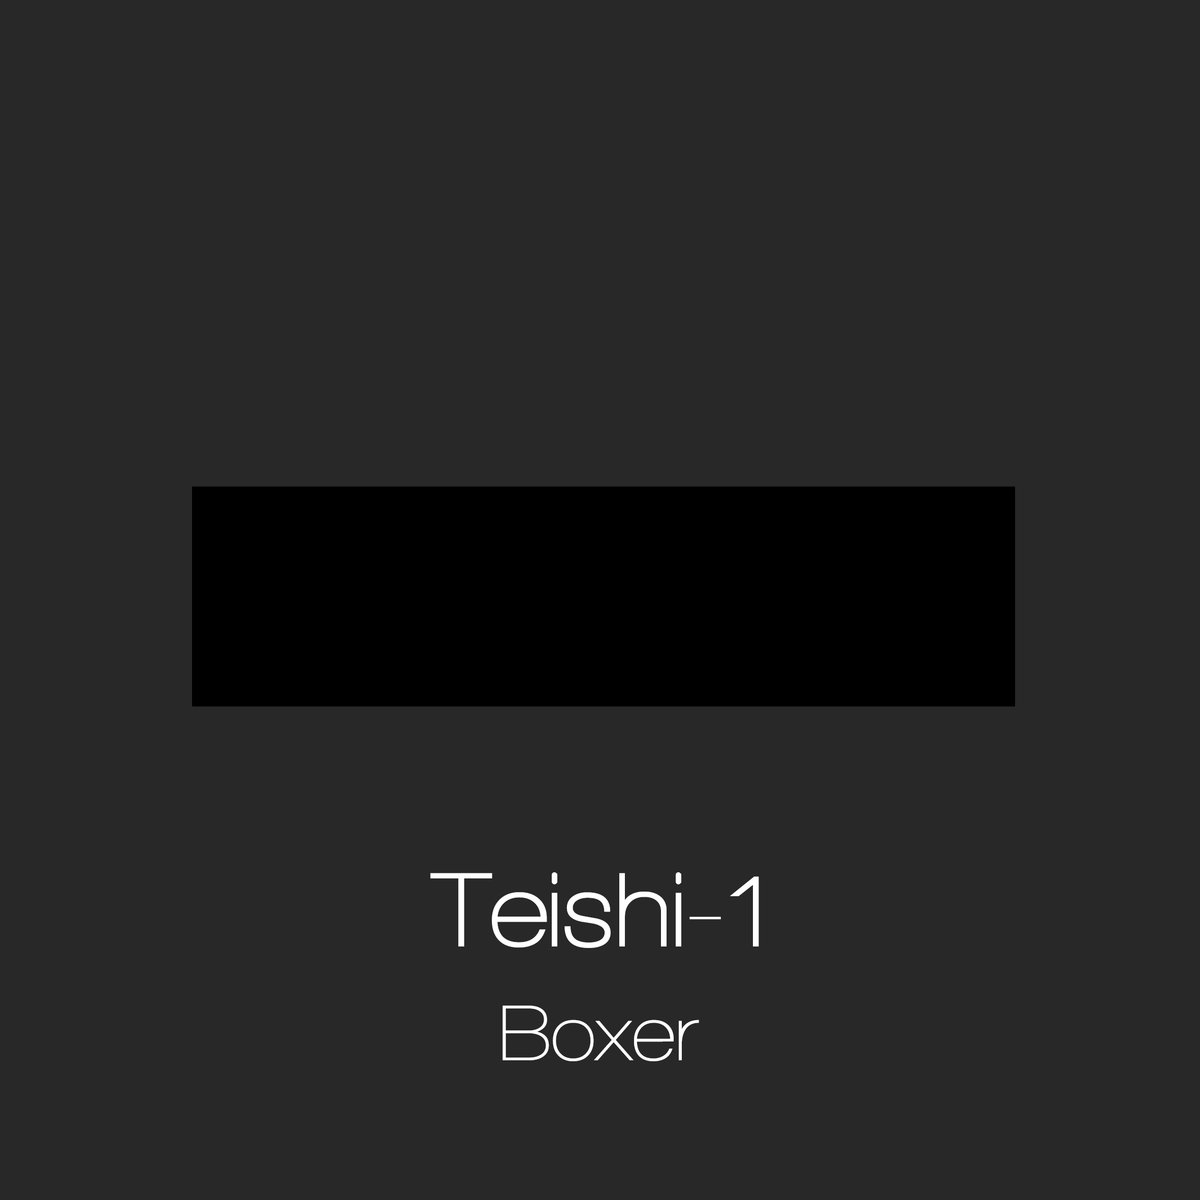 Teishi-1 - Boxer (alternative, electronic)